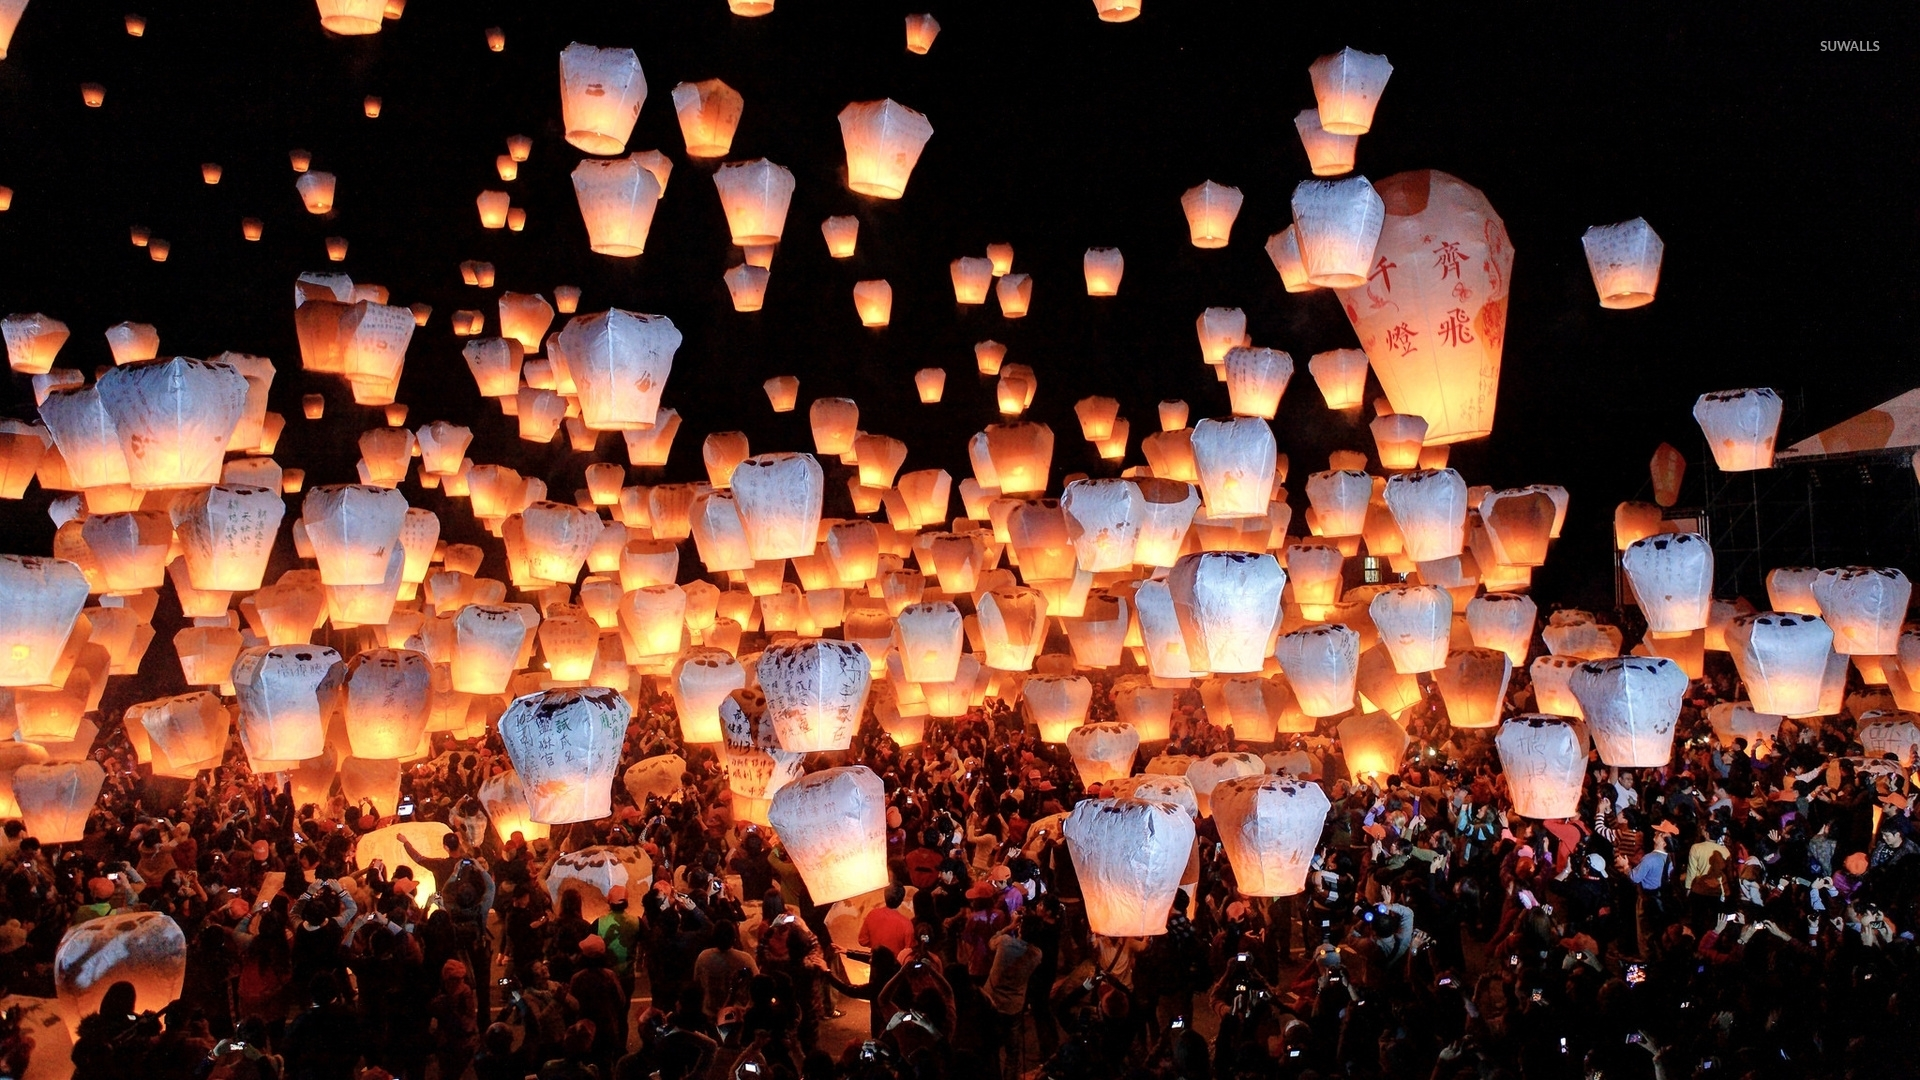 Sky Lanterns Wallpaper Iphone Sky Lanterns Wallpaper Photography Wallpapers 47912